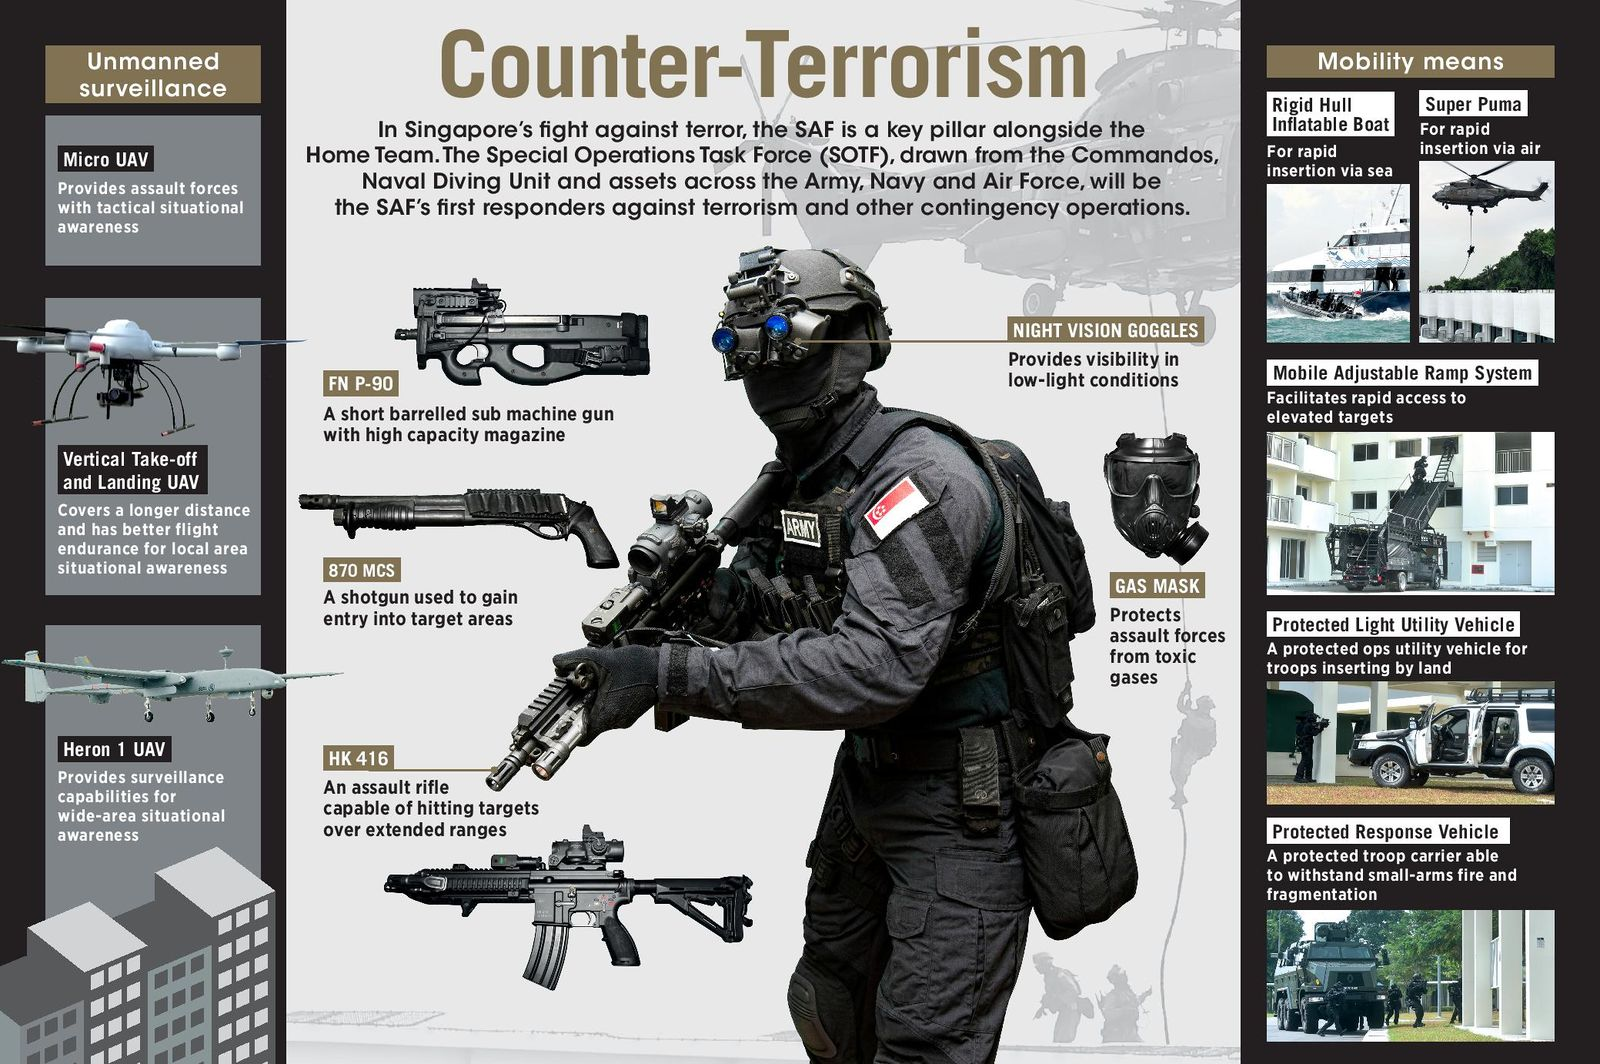 how counter-terrorism plans are developed essay In 1997, a counter-terrorism preparatory group was set up to determine europol's role in matters of counter-terrorism and, thereafter, the amsterdam treaty approved an extension of europol's mandate to specifically include counter-terrorism.